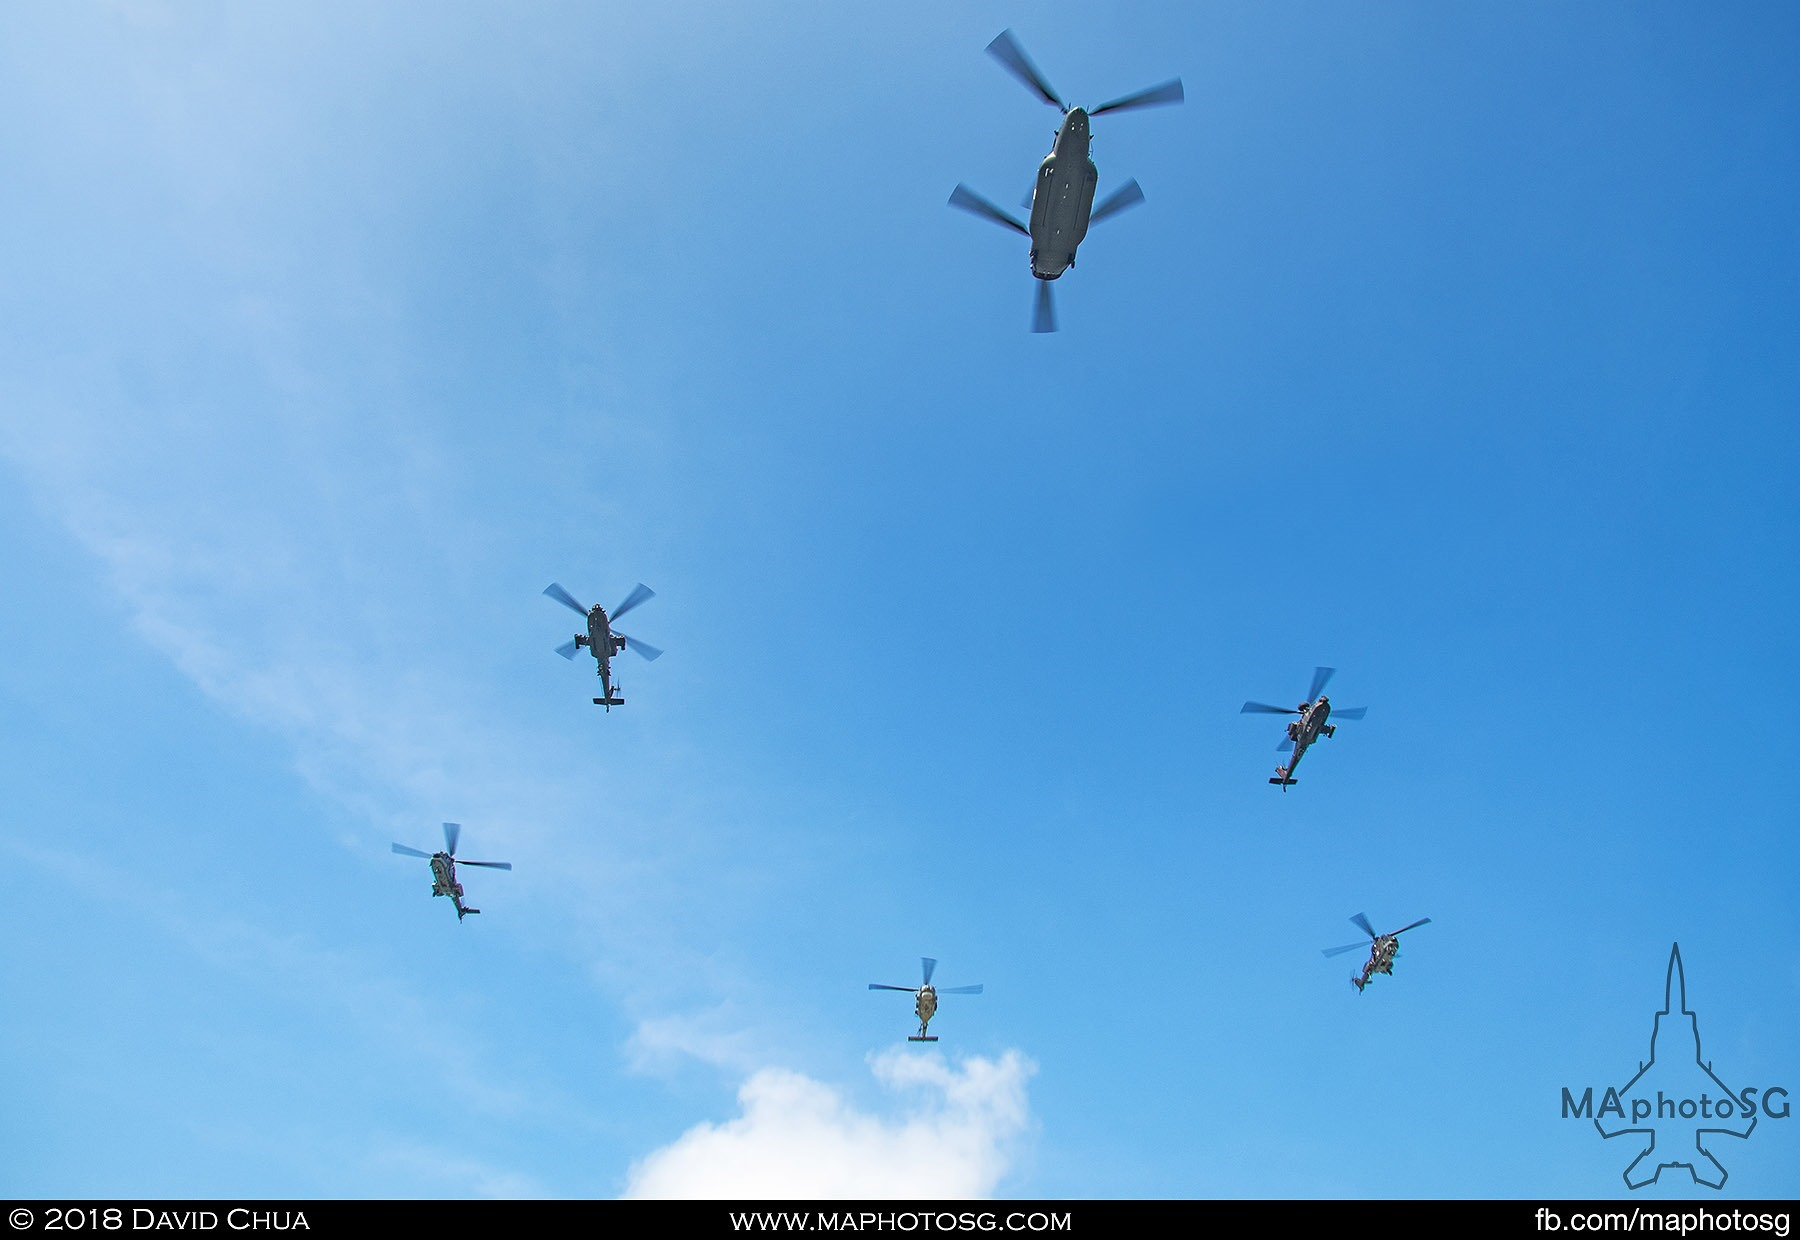 Helicopter Formation comprised of 1 CH-47D Chinook, 2 AH-64 Apaches, 2 AS332M Super Pumas and 1 S-70B Seahawk